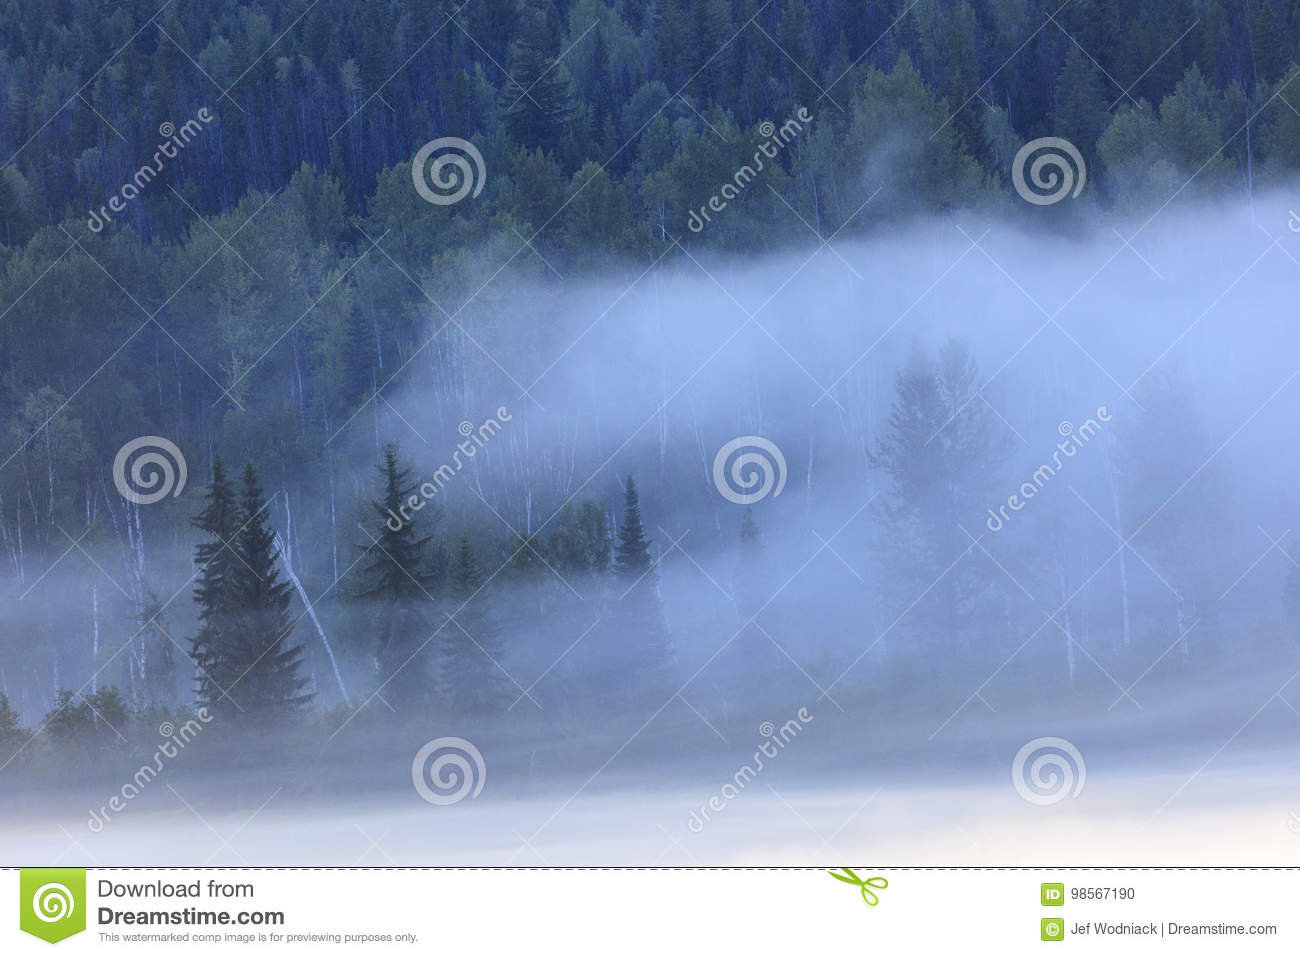 Morning mist stock photo  Image of natural, background - 98567190